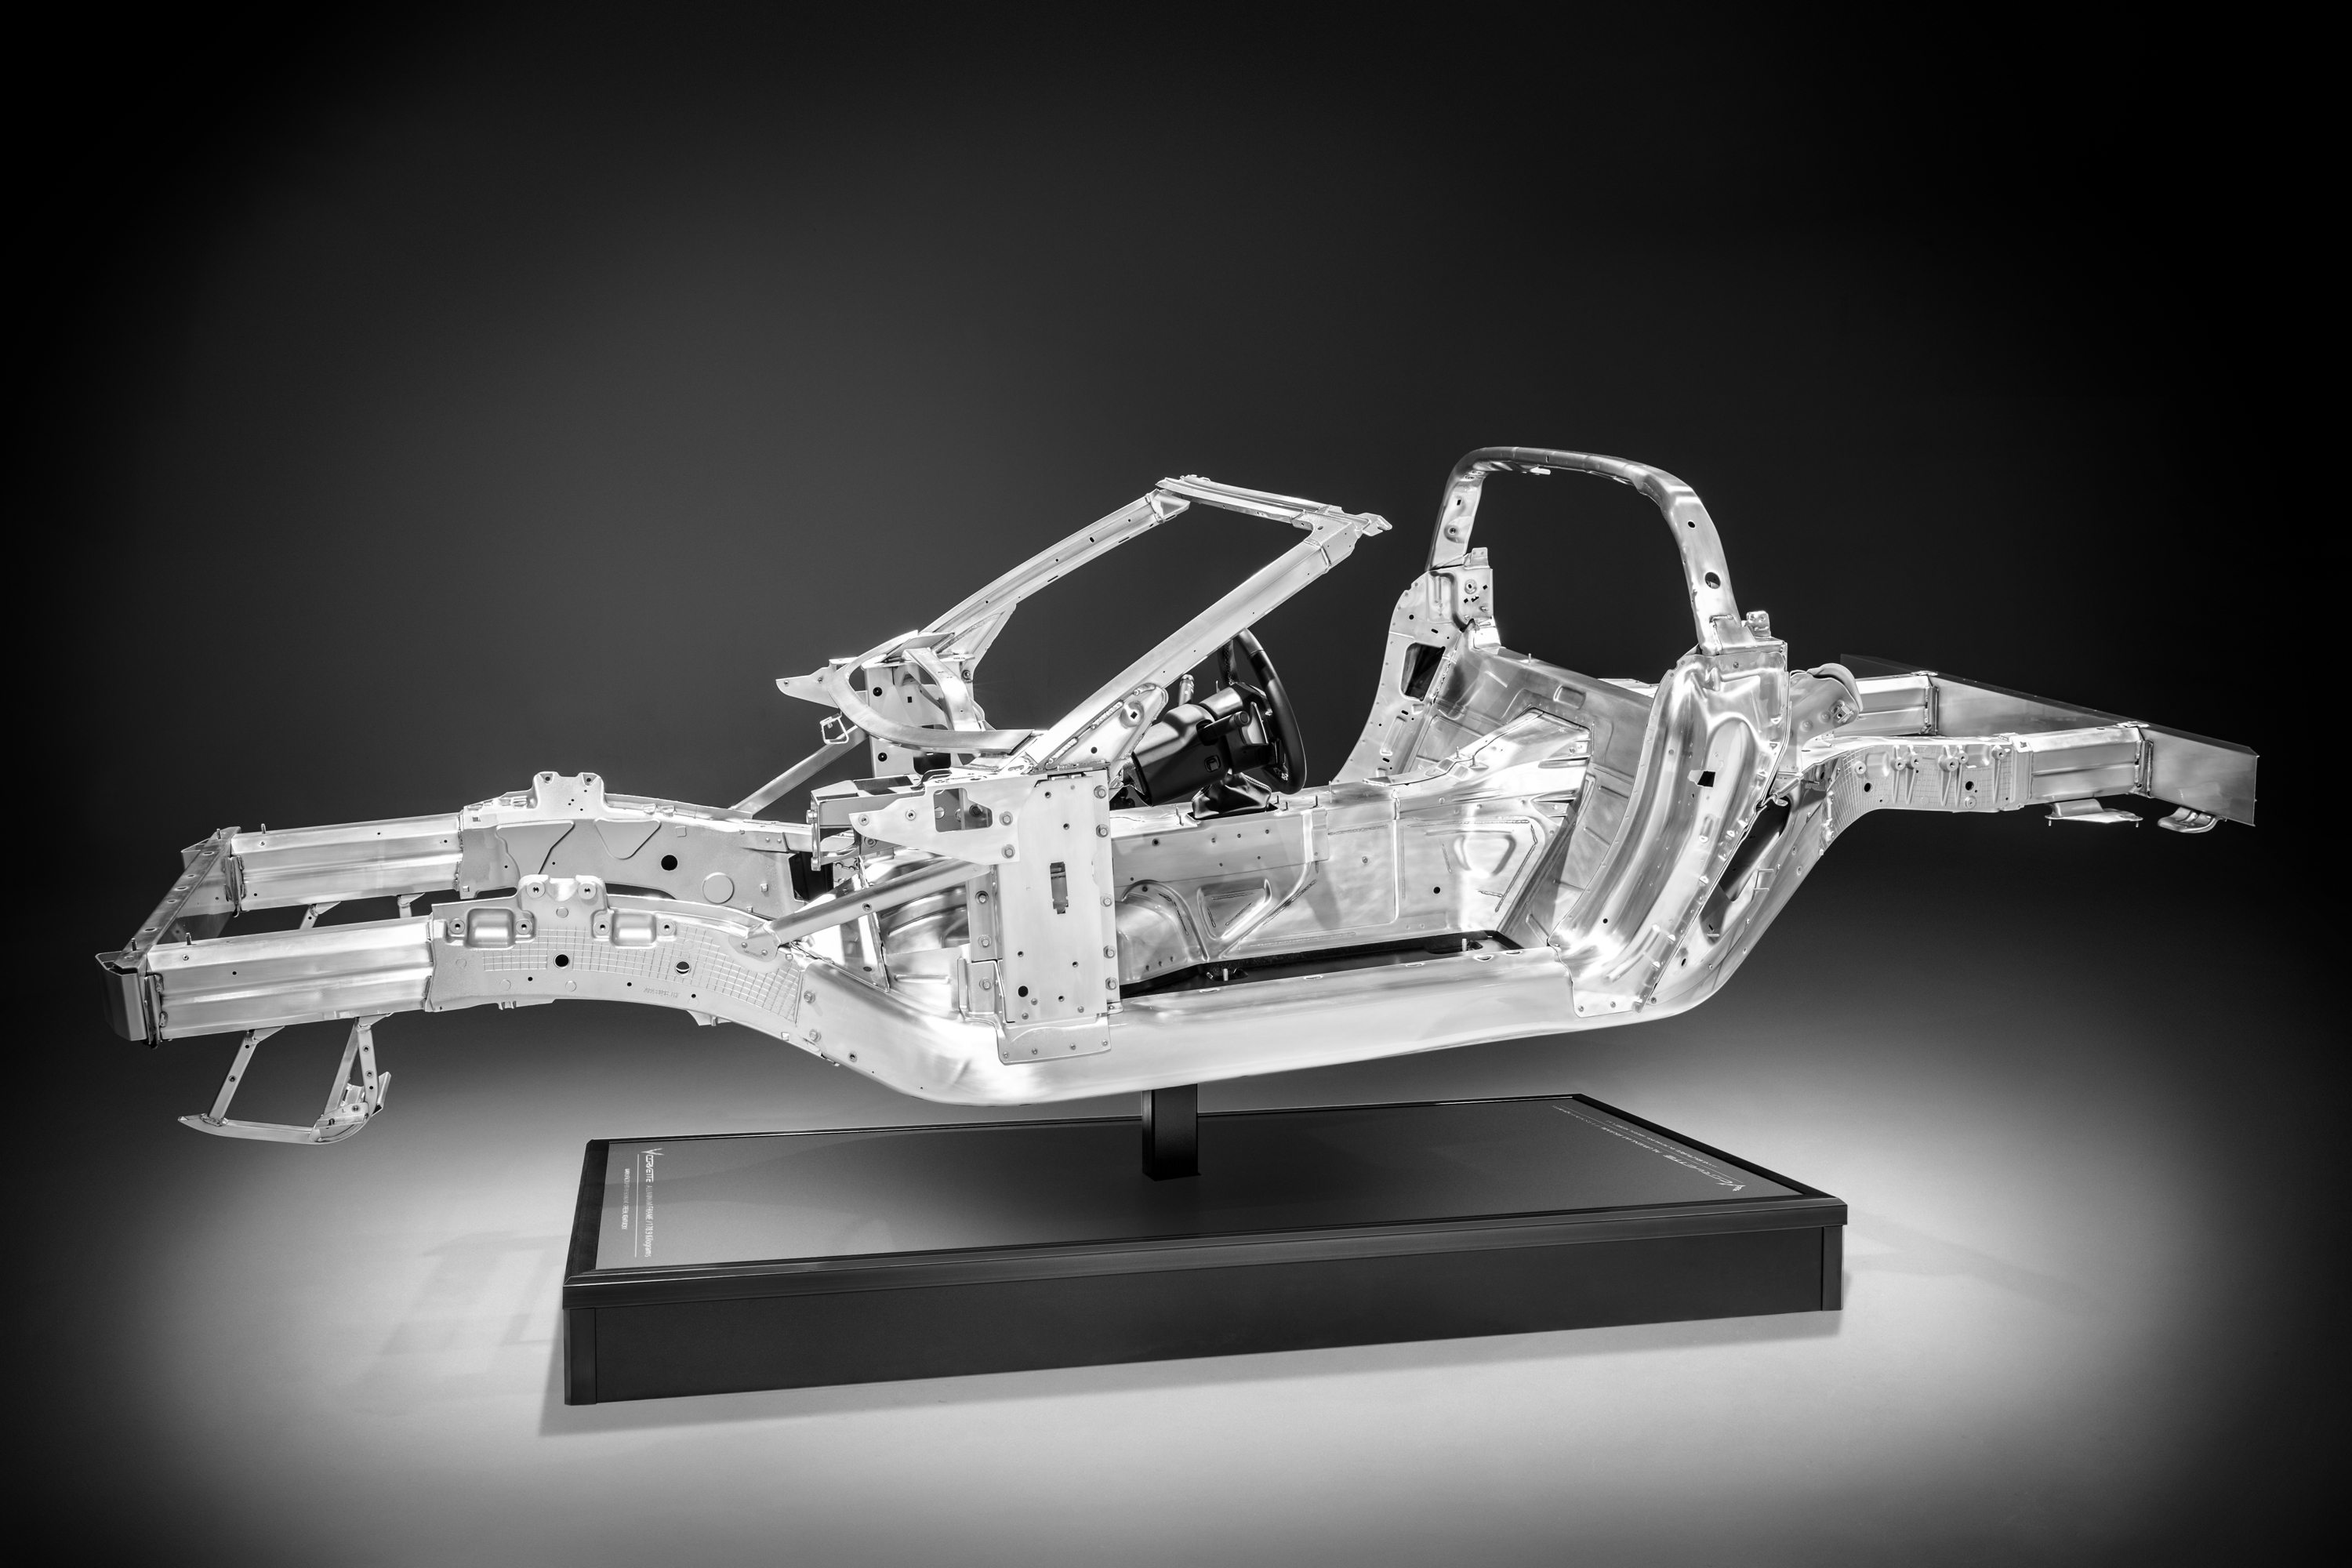 2014 Chevrolet Corvette all-new aluminum frame